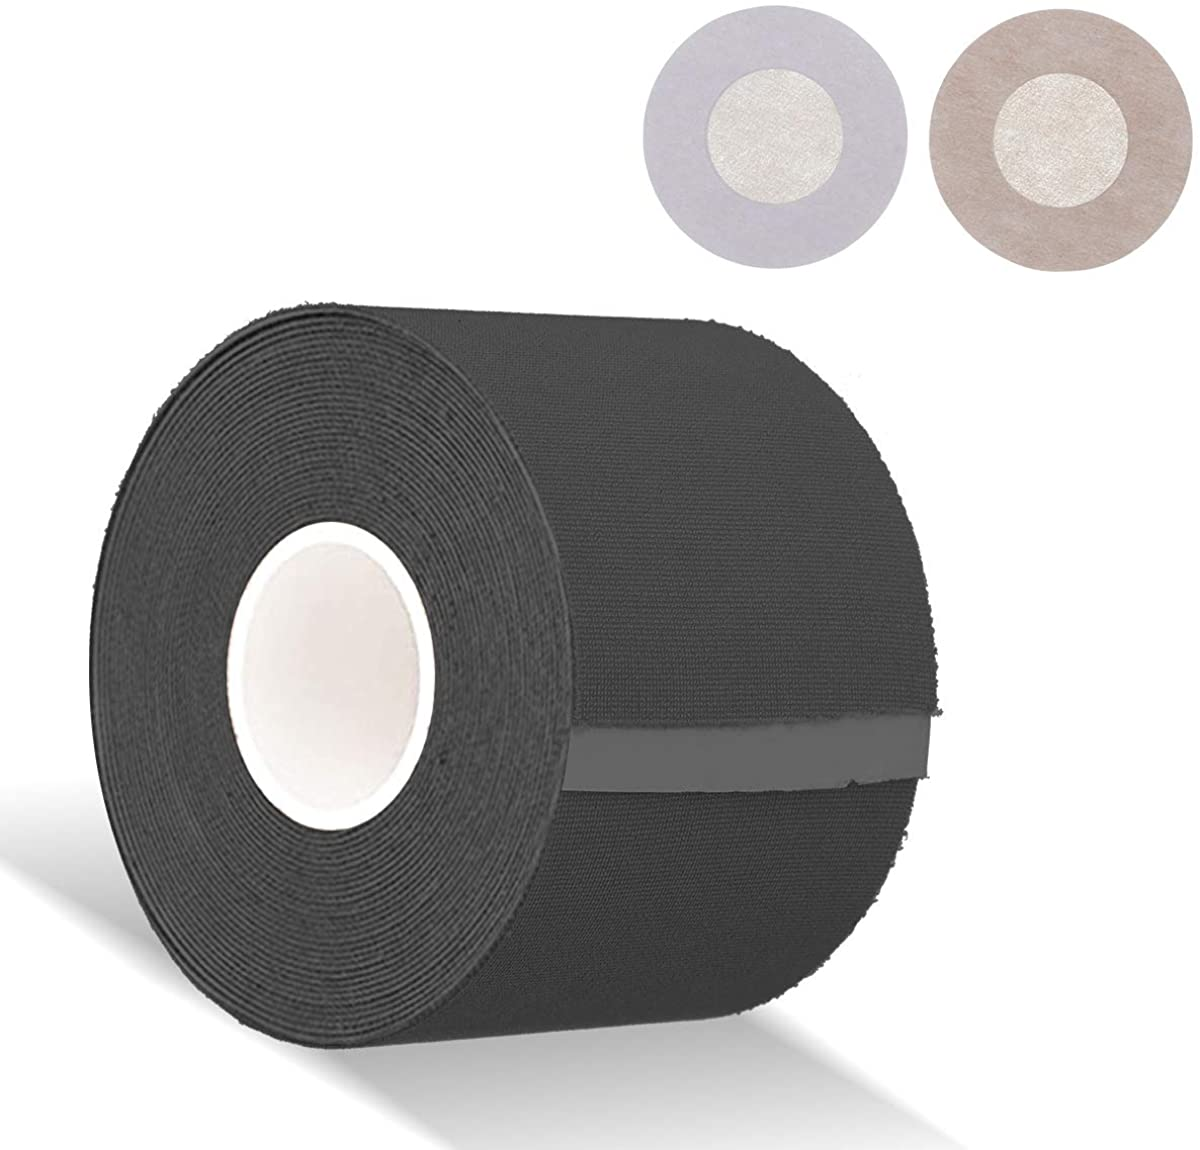 Boob Tape and 10 Pcs Petal Backless Nipple Cover Set, Breathable Breast Lift Tape Medical Grade Athletic Tape